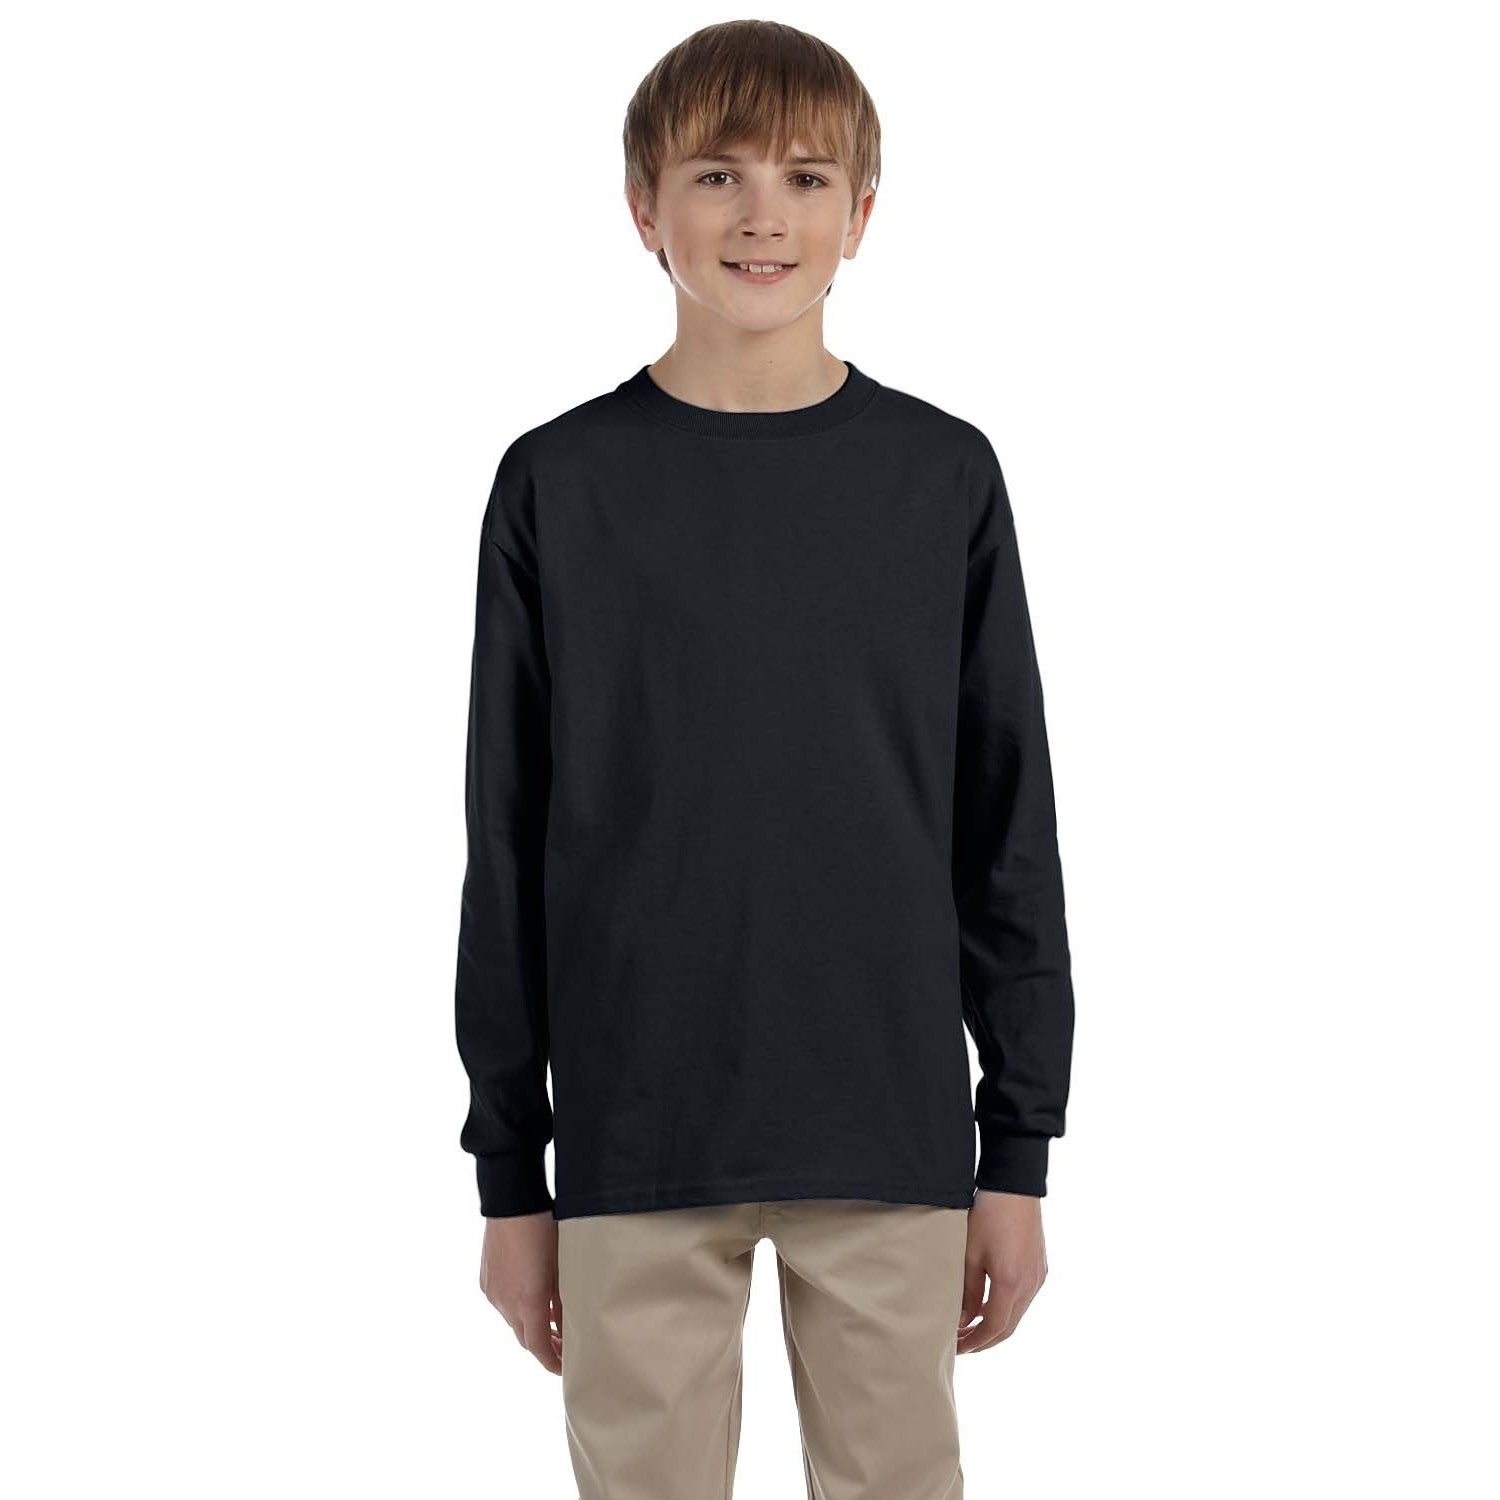 Jerzees Boys' Black Cotton/Polyester Blend Heavyweight Lo...